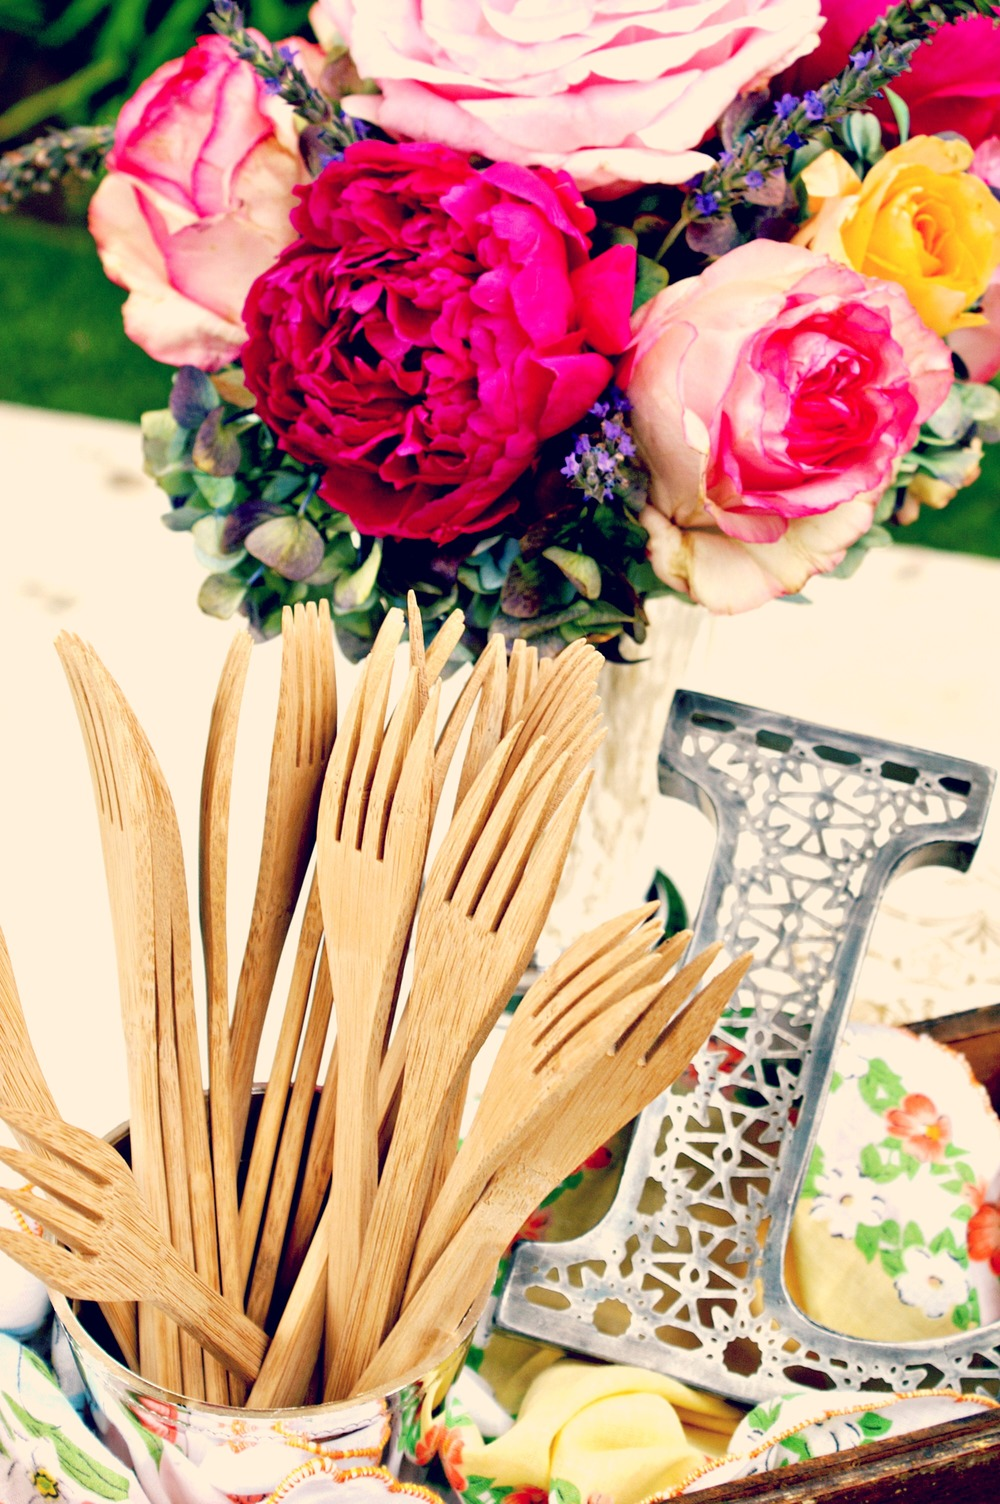 burlap and lace - Bamboo forks and peonies.jpg